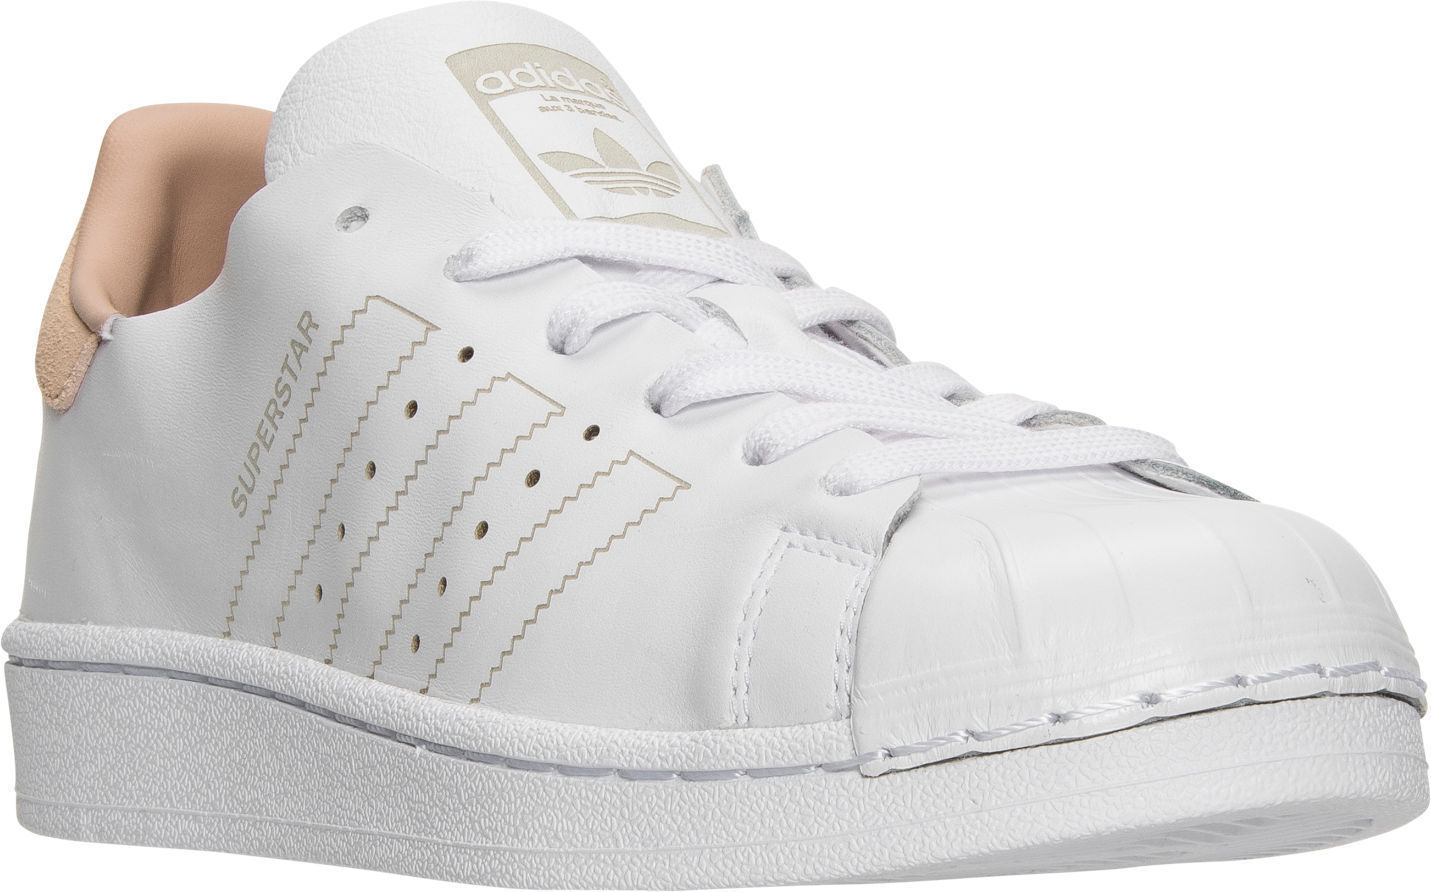 ADIDAS SUPERSTAR DECON LEATHER LOW SNEAKER WOMEN SHOES WHITE BY8703 SIZE 8.5 NEW